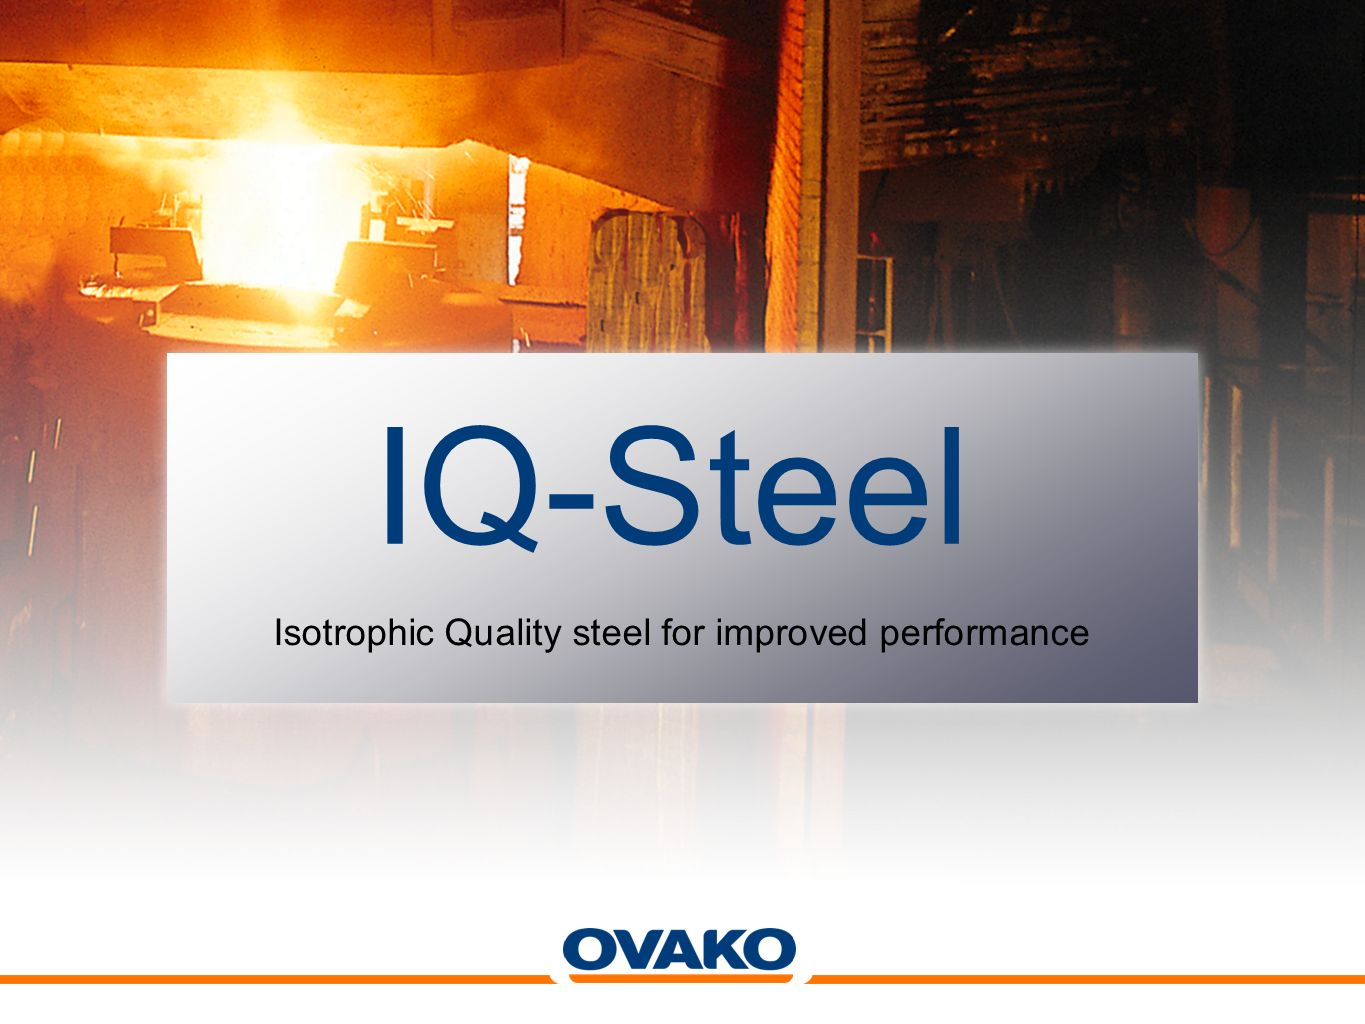 Isotrophic Quality steel for improved performance